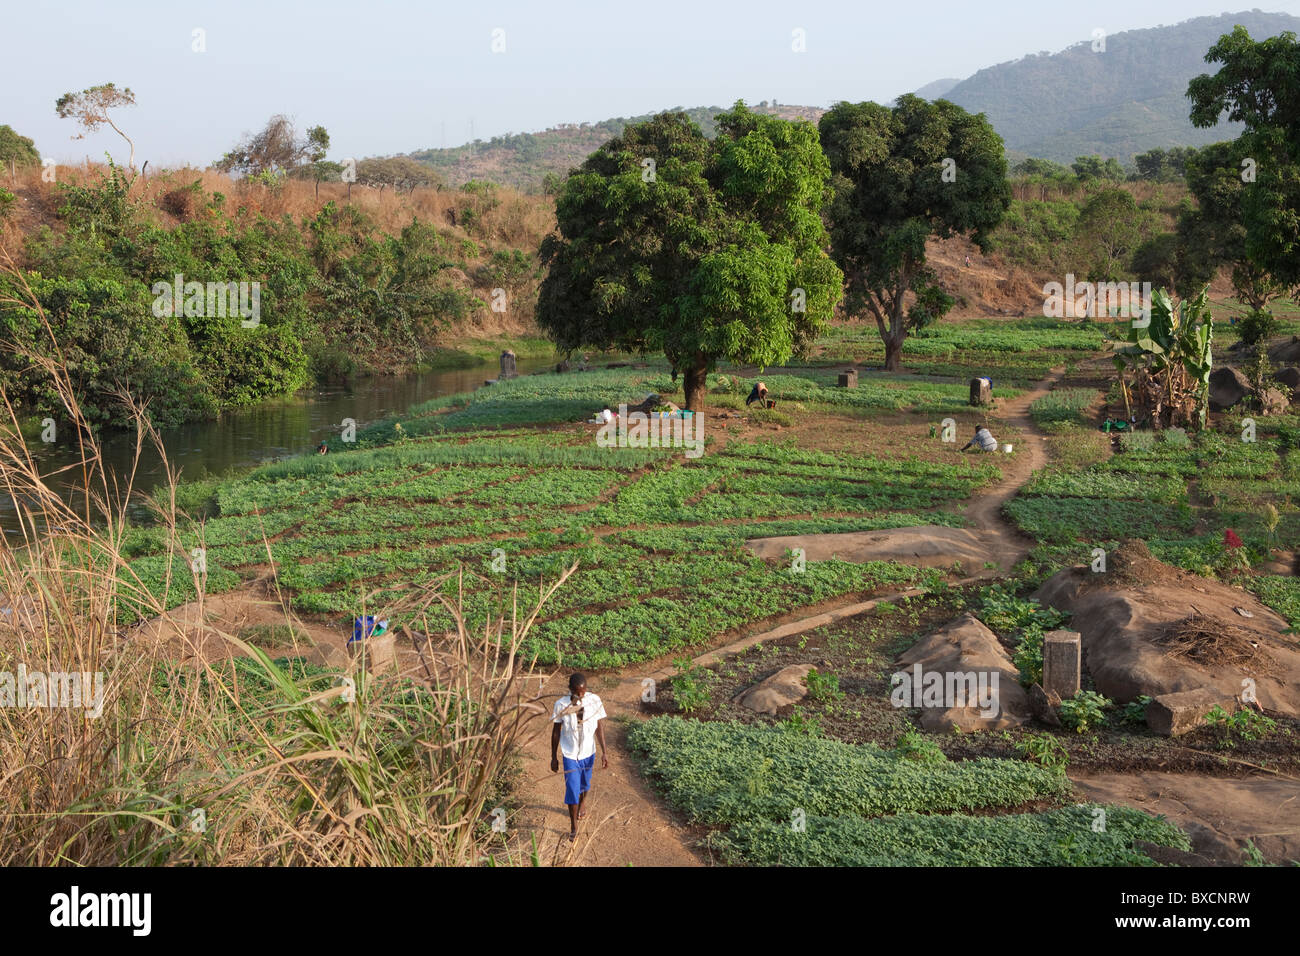 Fertile farmland lies in the town of Hastings in Sierra Leone, West Africa. - Stock Image